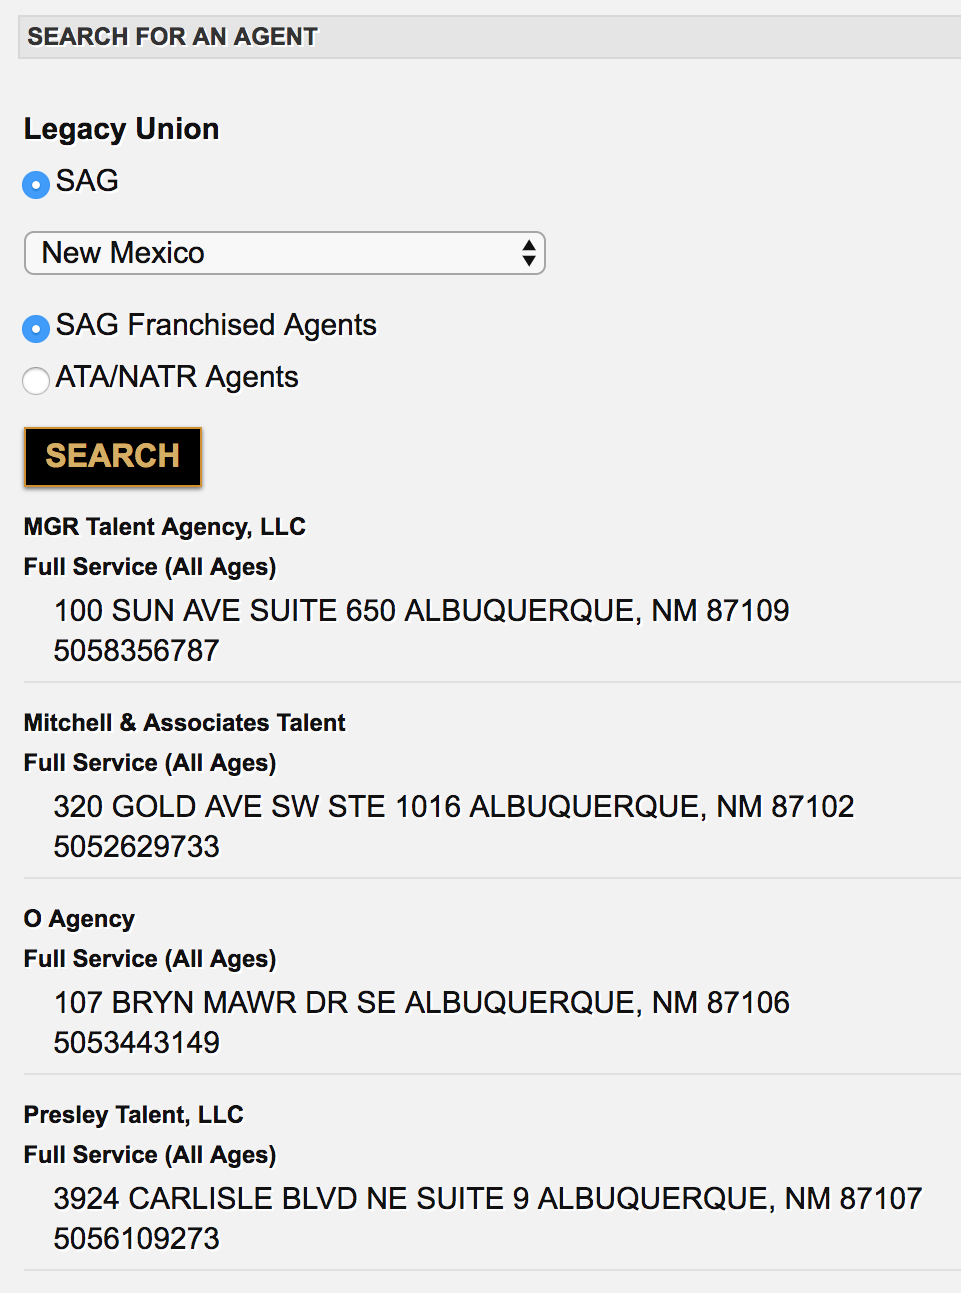 SAG-AFTRA Franchised Agents in New Mexico